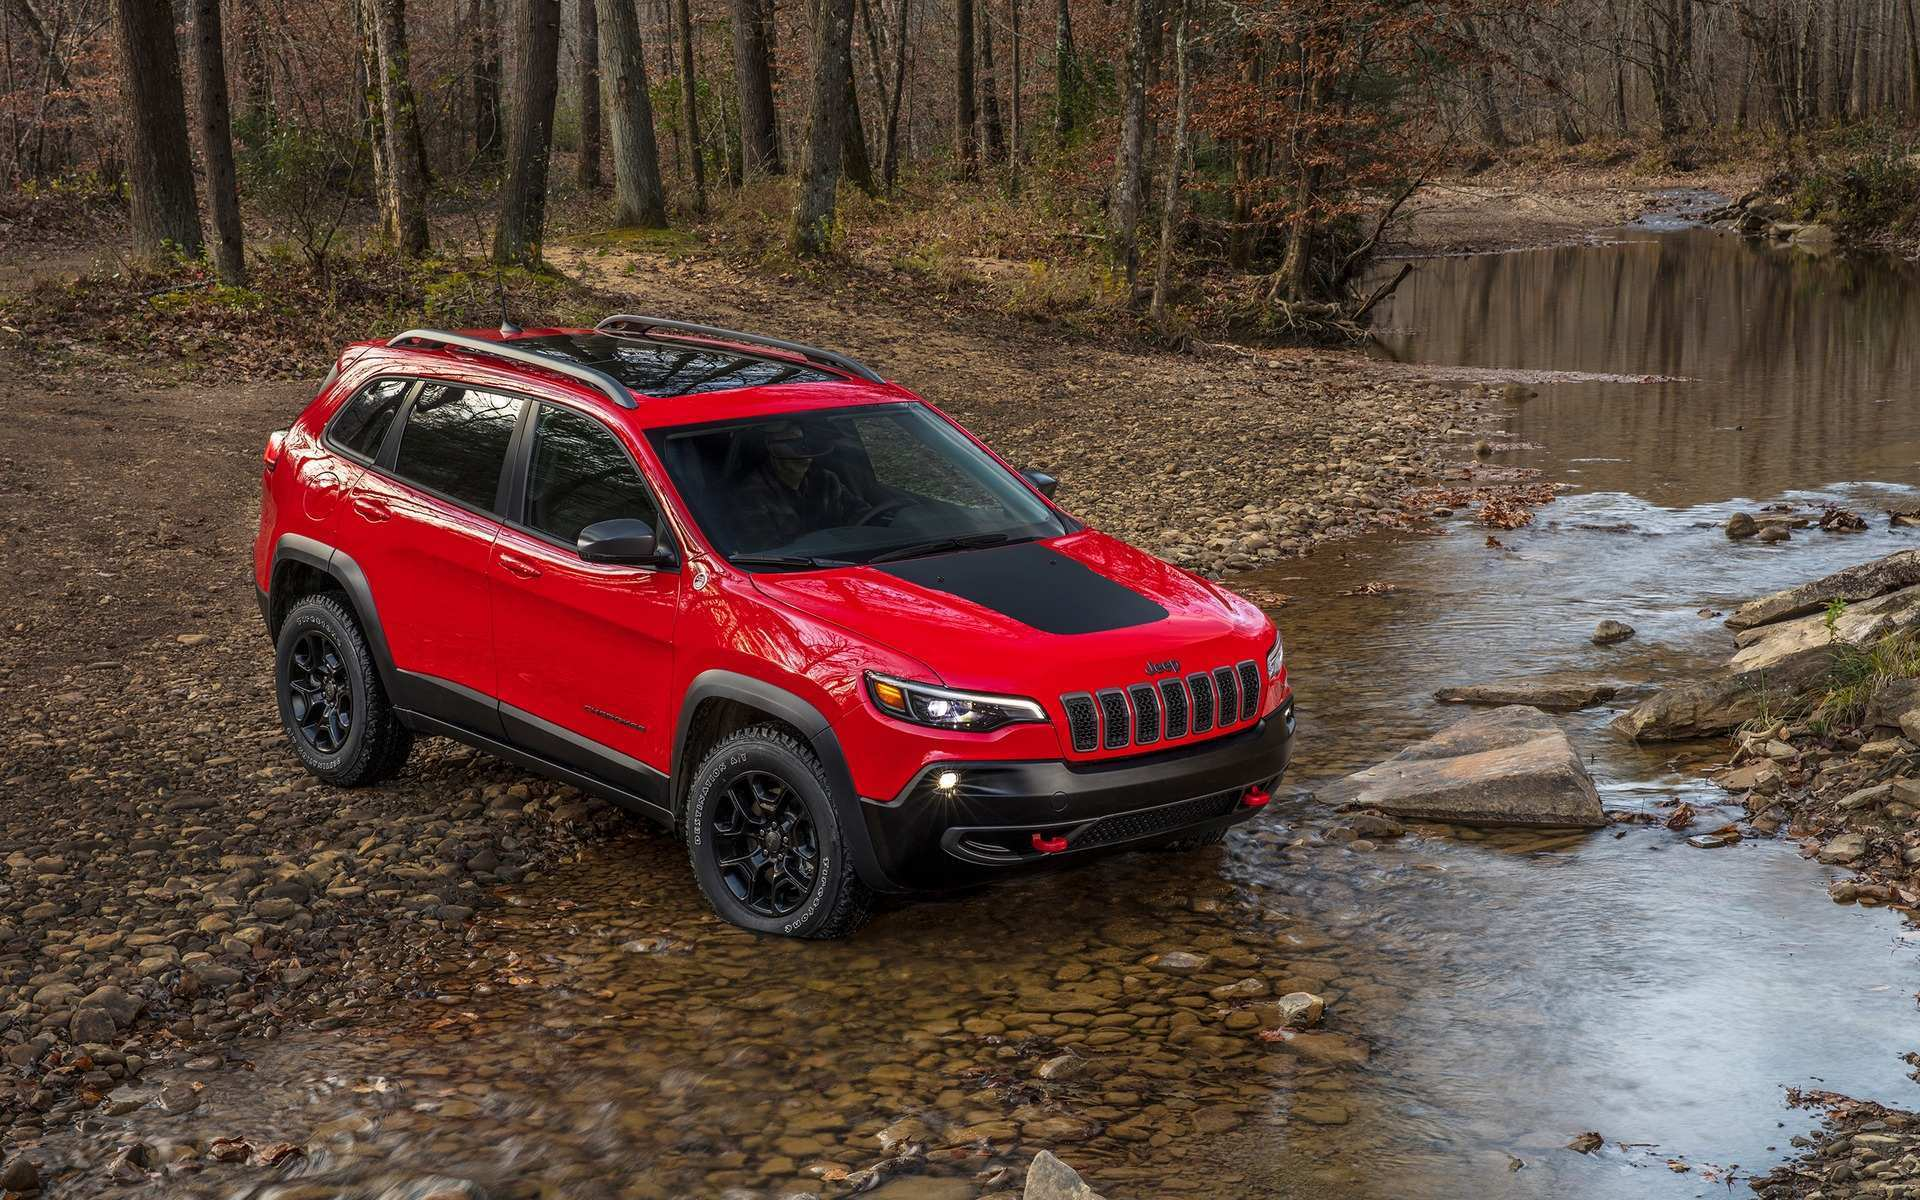 25 Concept of Best Cherokee Jeep 2019 Review Specs And Review Rumors with Best Cherokee Jeep 2019 Review Specs And Review